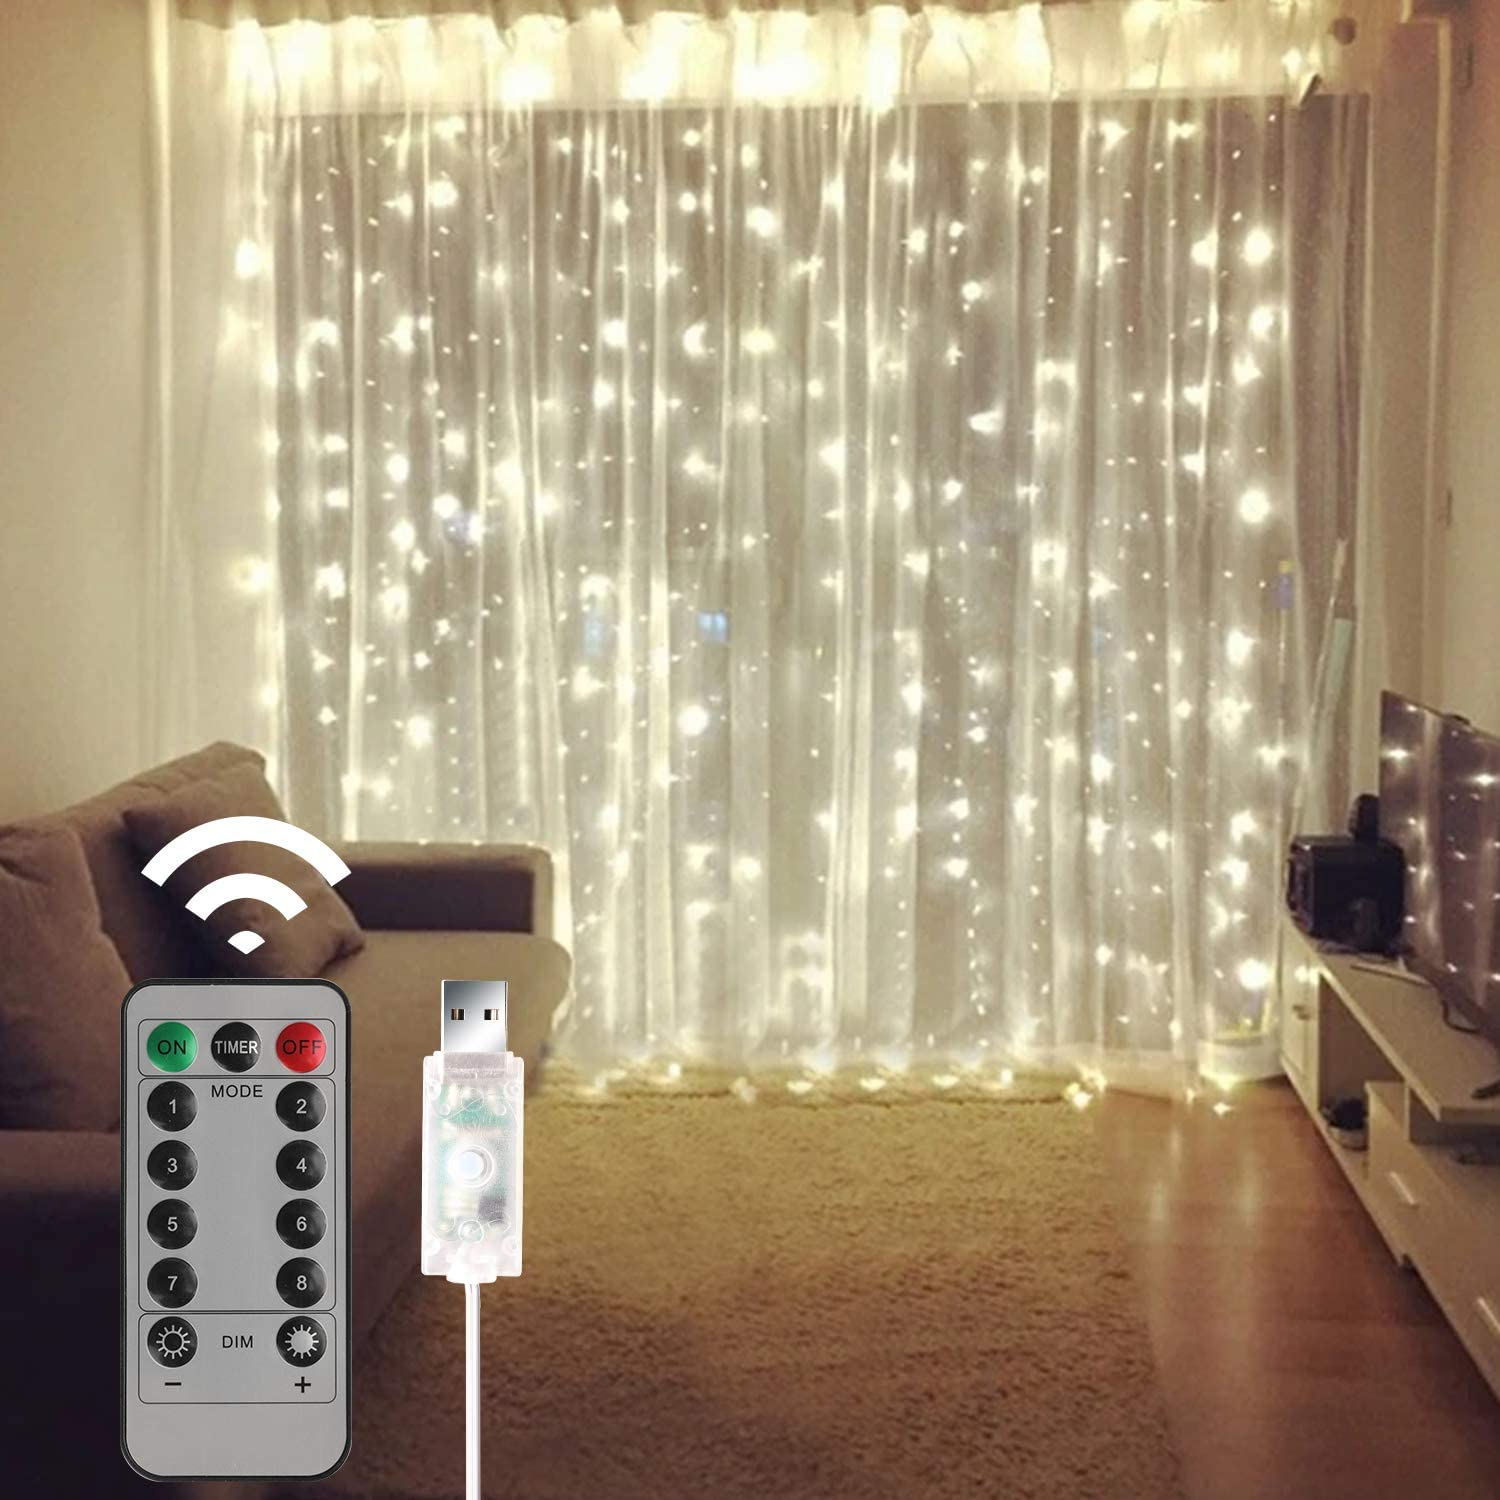 300 LED Curtain String Lights, Fairy Lights Plug in Hanging Lights with Remote Indoor for Home Decor, Wedding,Christmas, Birthday Decorations(Curtain is Not Included)